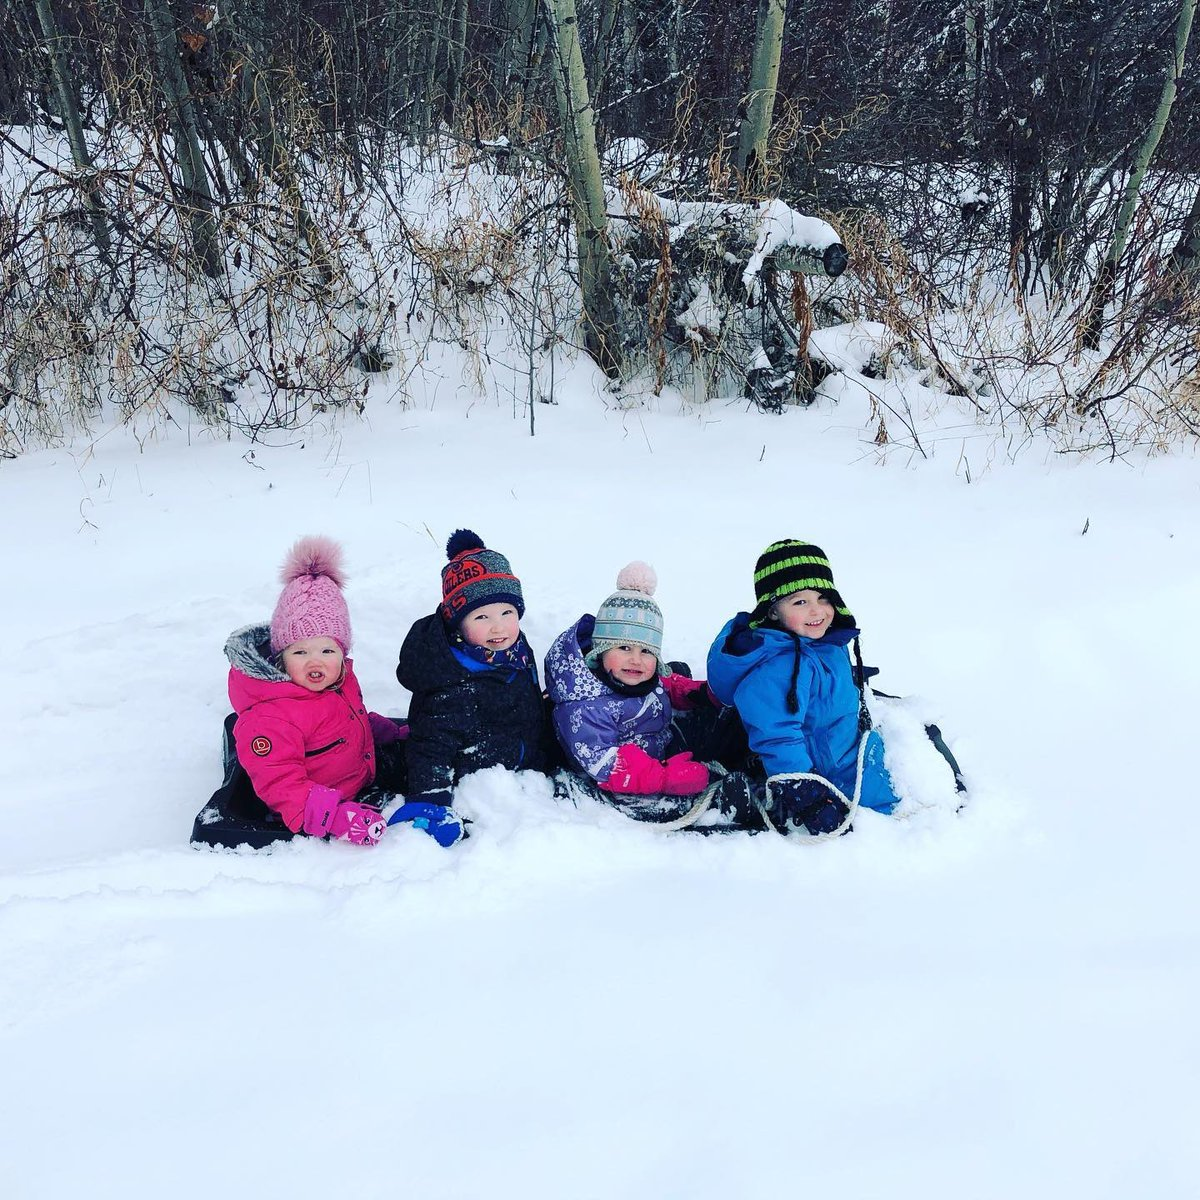 Sunday's are for sledding!  You heading outside today? #ExploreVermilion #VermilionProvincialPark #SkiNorthAB #TakeItToTheLake #snowseeker #sledgang #familyfun #letsgoagain @IAmASnowSeeker  Thanks to Megan Hartwell for this great pic of the kiddos loving the snow!pic.twitter.com/8BHqnmVXmY